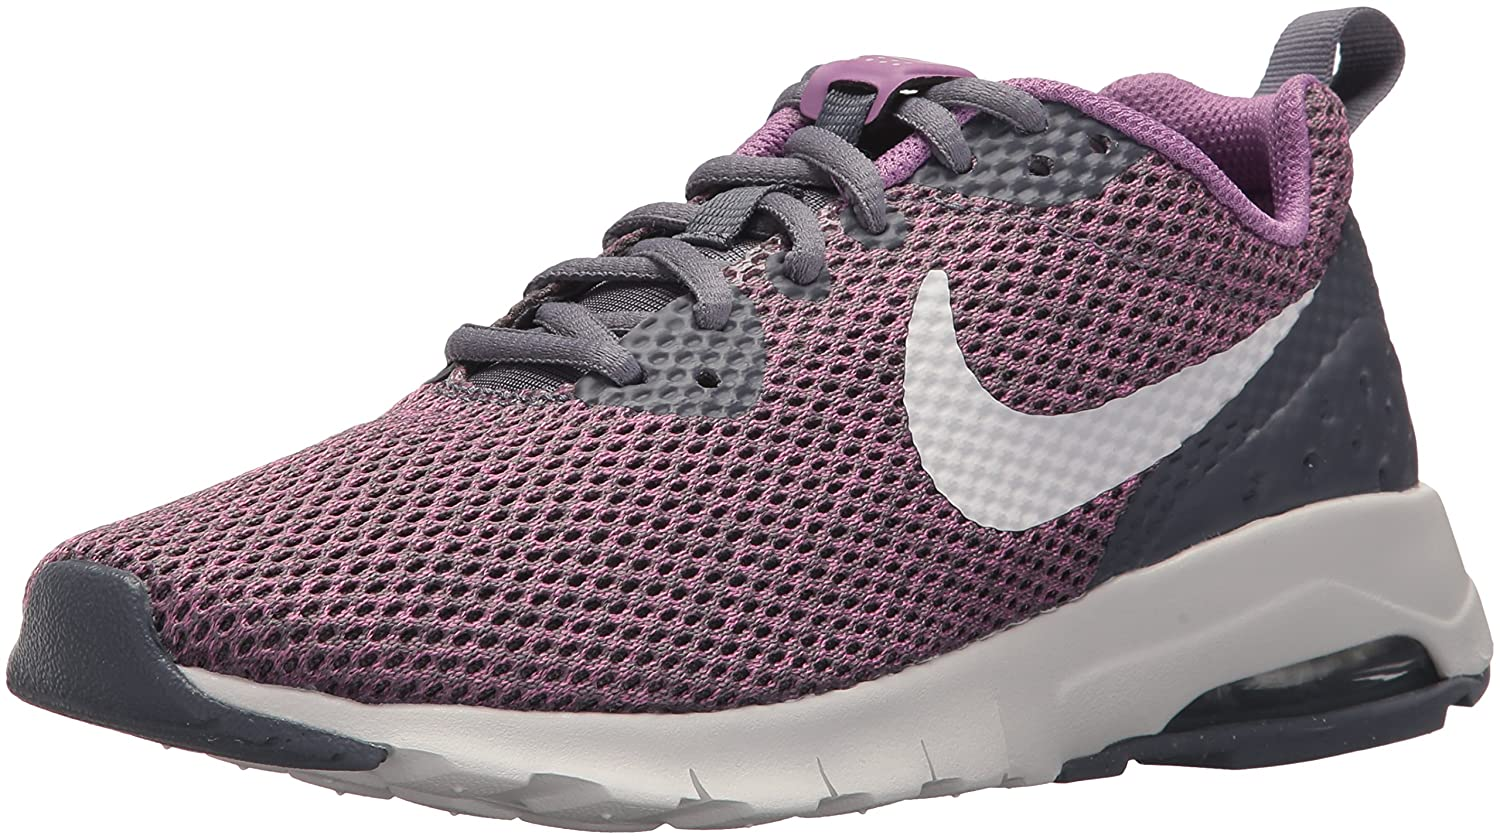 NIKE Women's Air Max Motion Lw Running Shoe B071KZCN8H 8 B(M) US|Light Carbon/Vast Grey/Dark Orchid